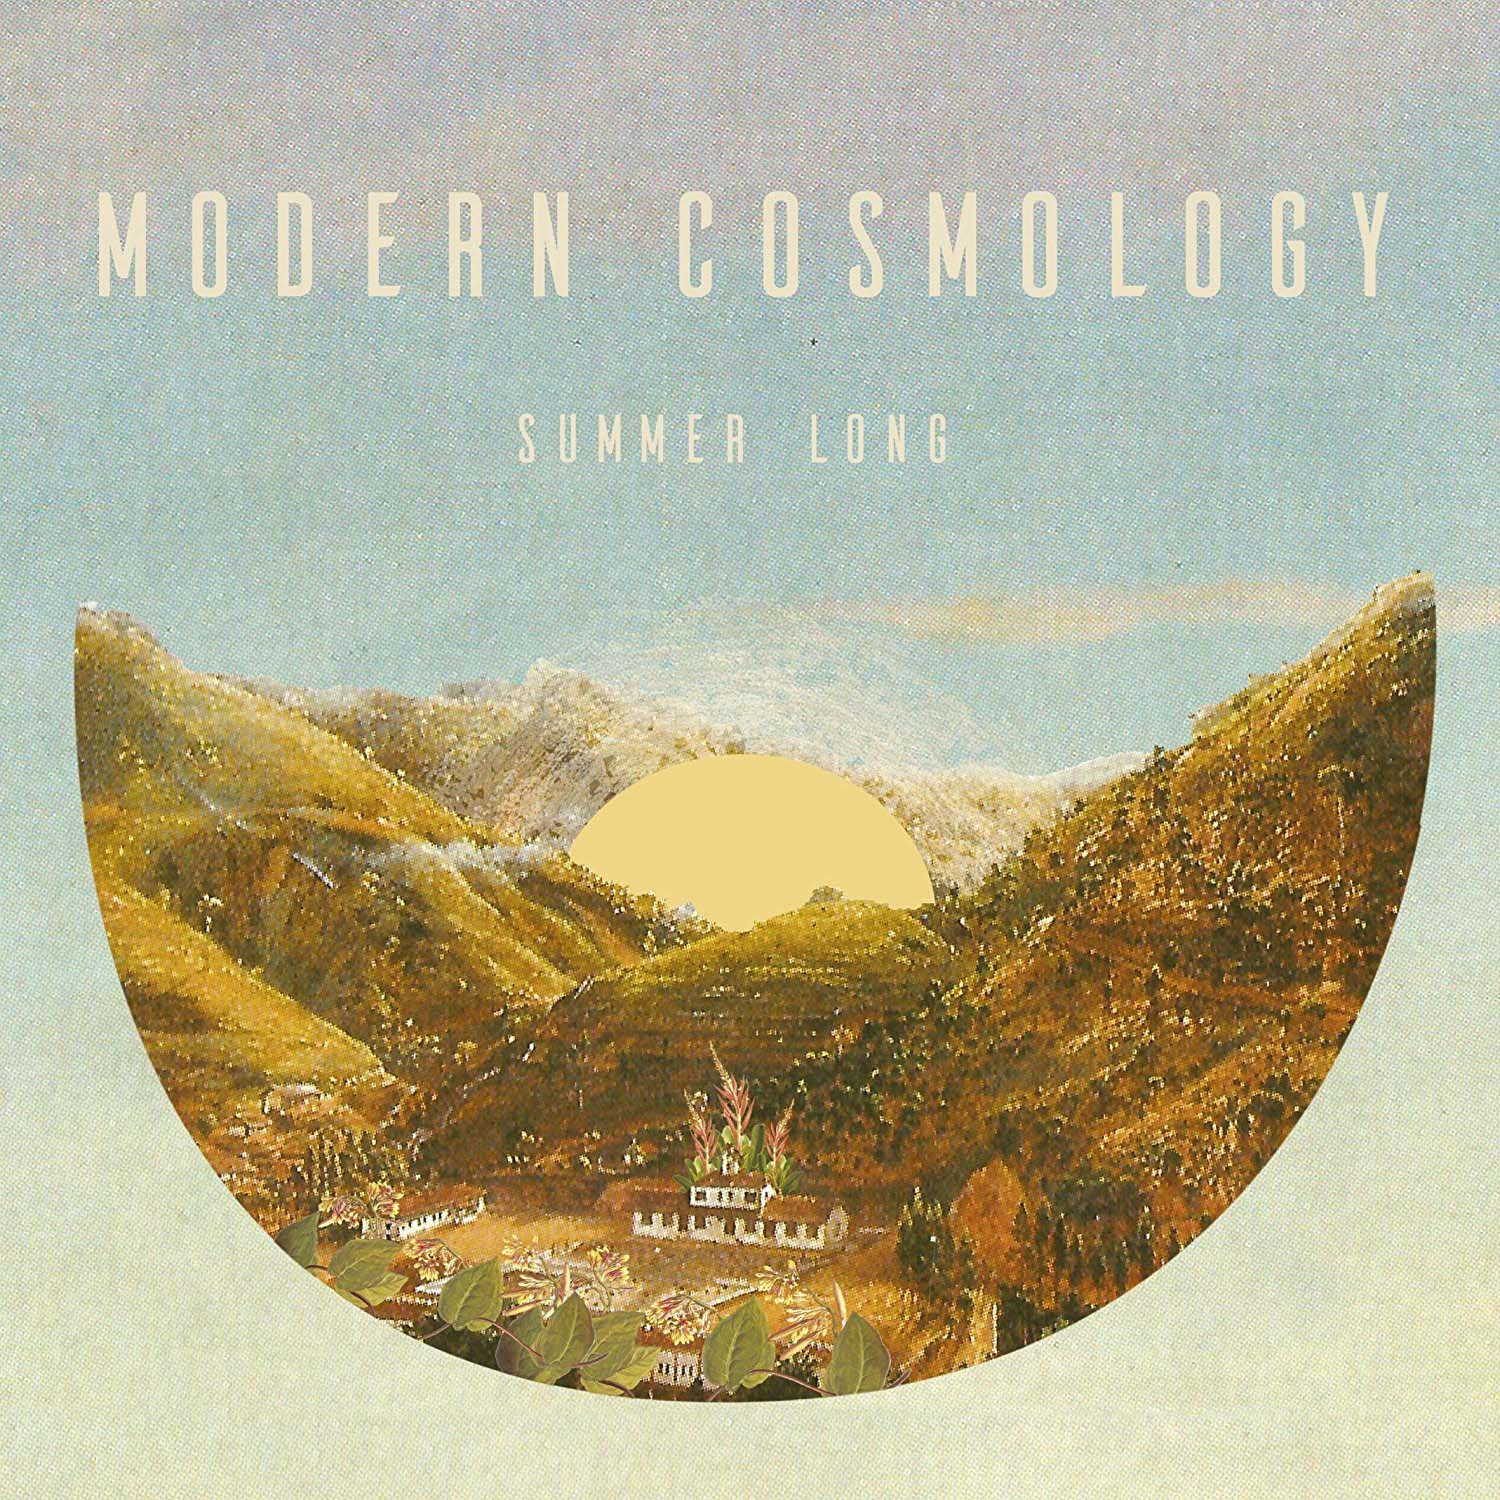 Vinile Modern Cosmology - Summer Long (10